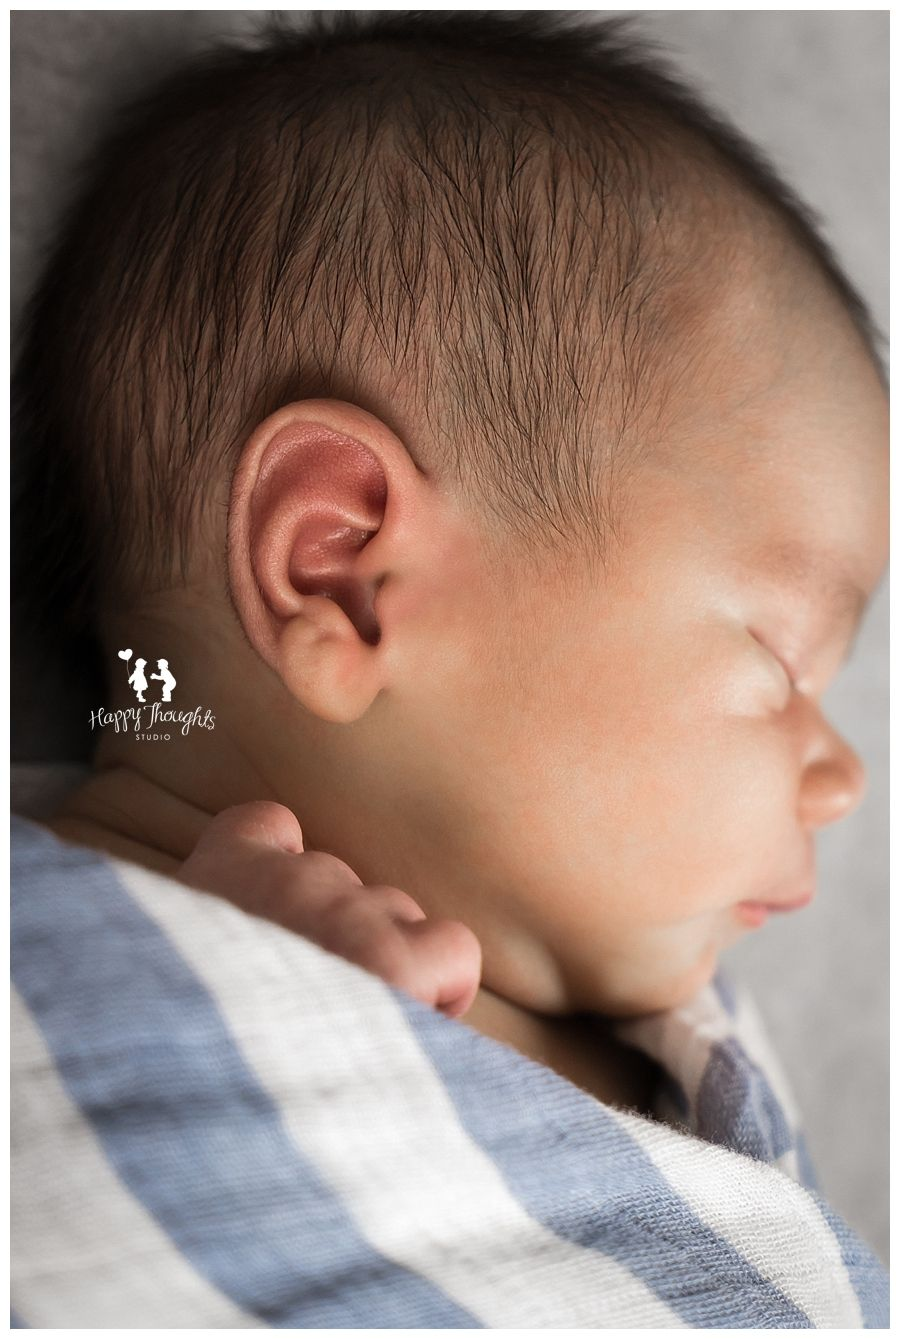 Newborn Baby Boy Photography Happy Thoughts Newborns Pinterest